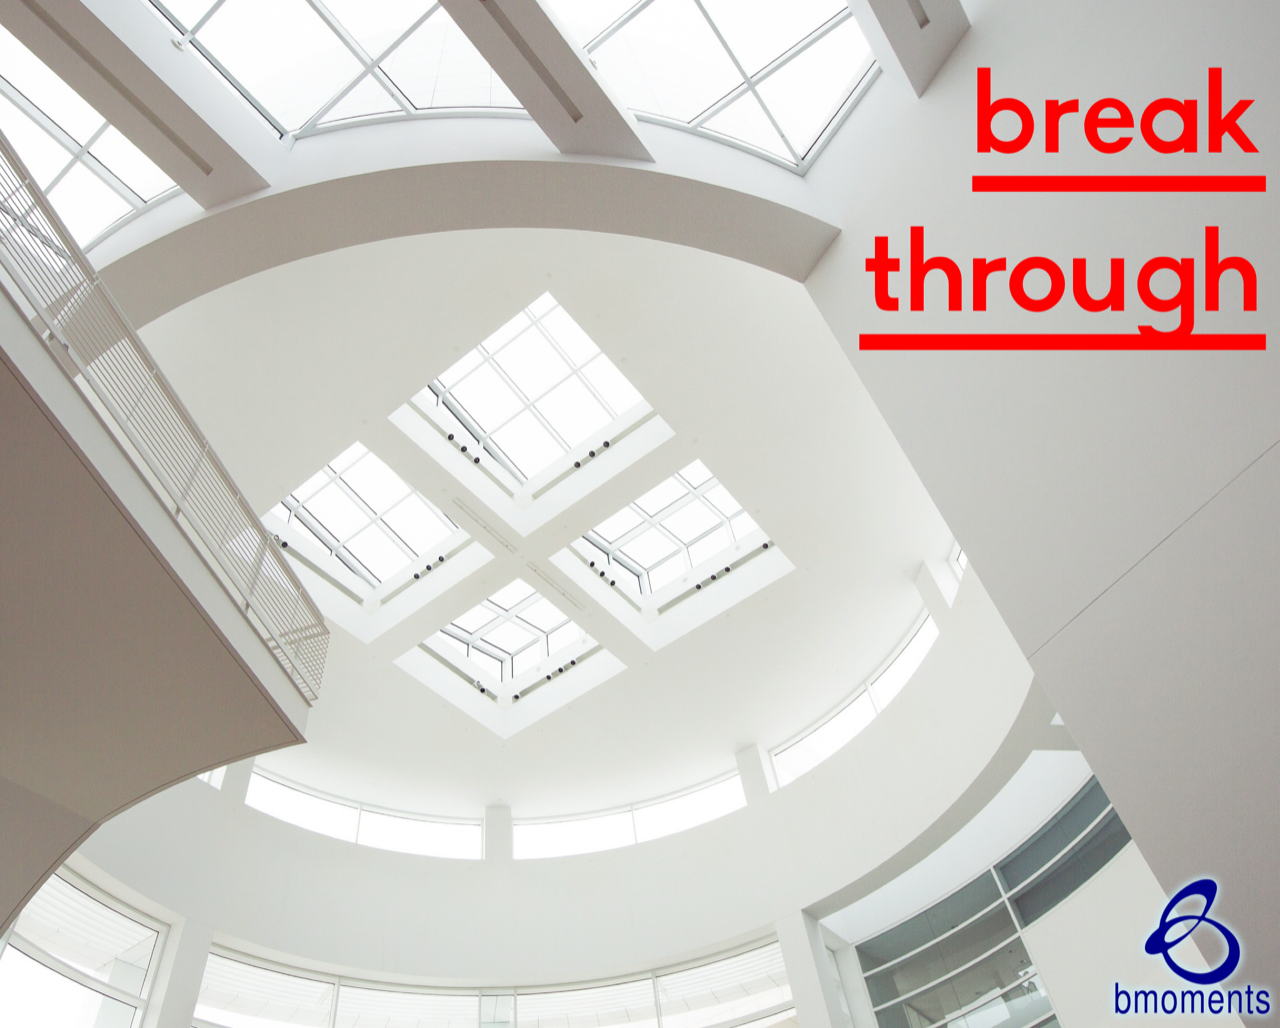 Break through Your Own Glass Ceiling